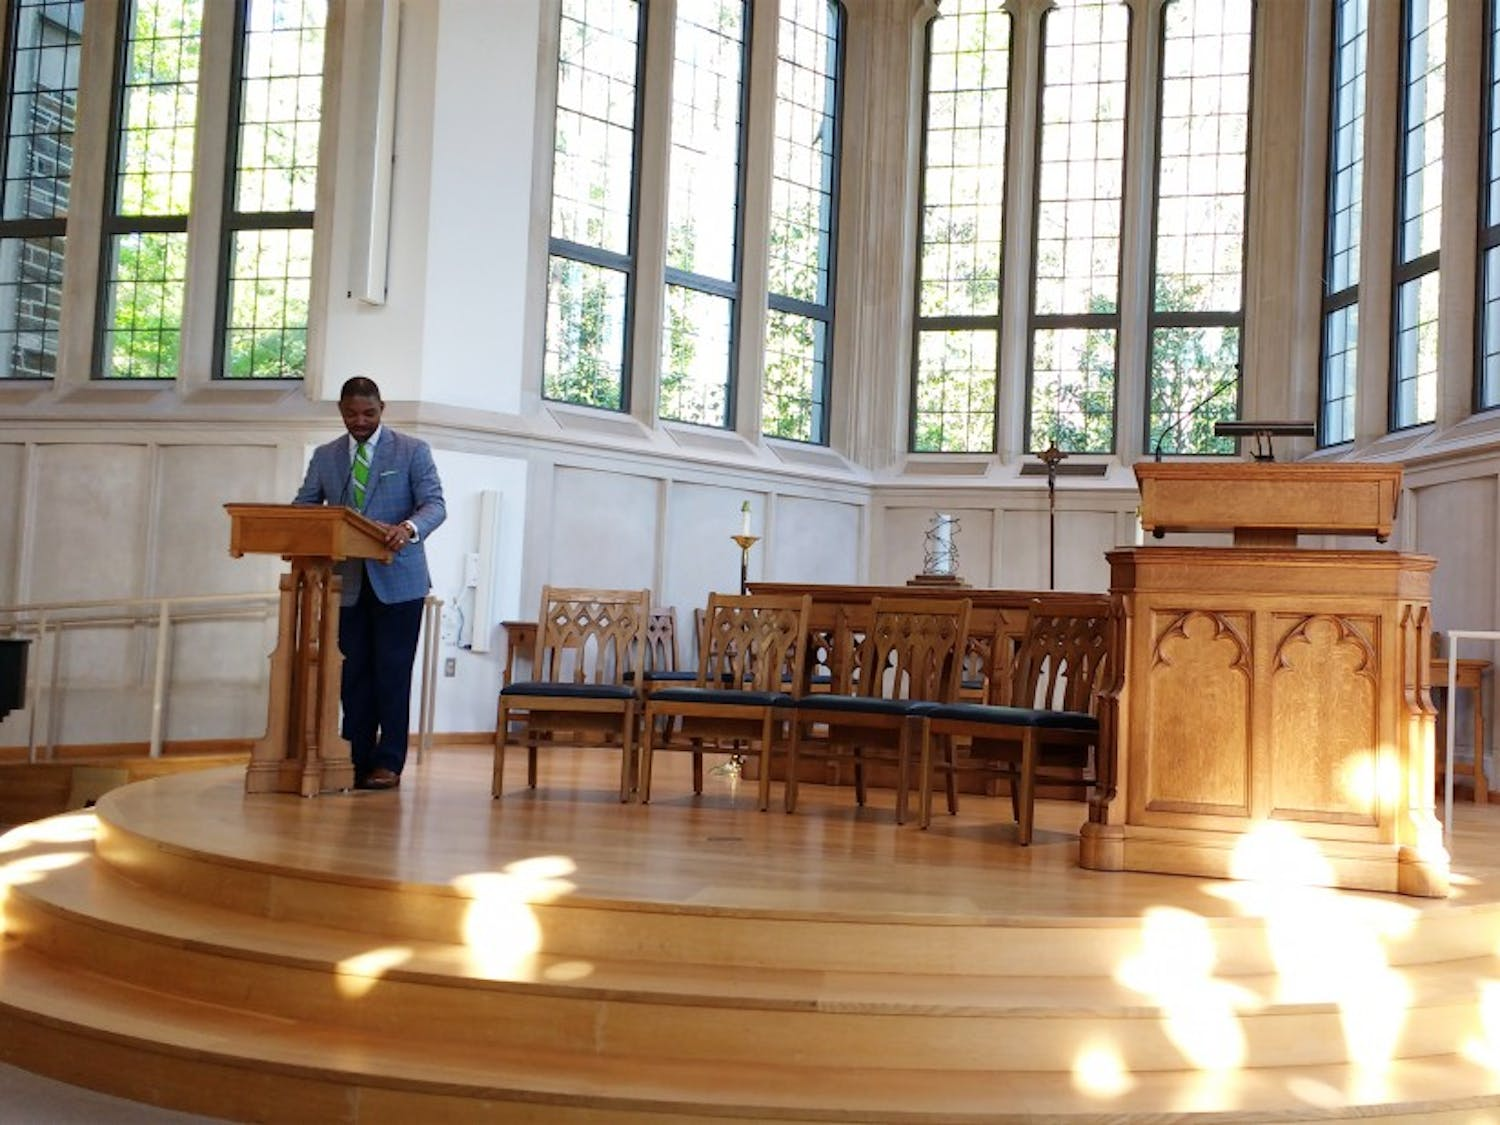 The keynote speaker of this weekend's conferencewas the Rev. Starsky Wilson, who said that the current legal system is not just.